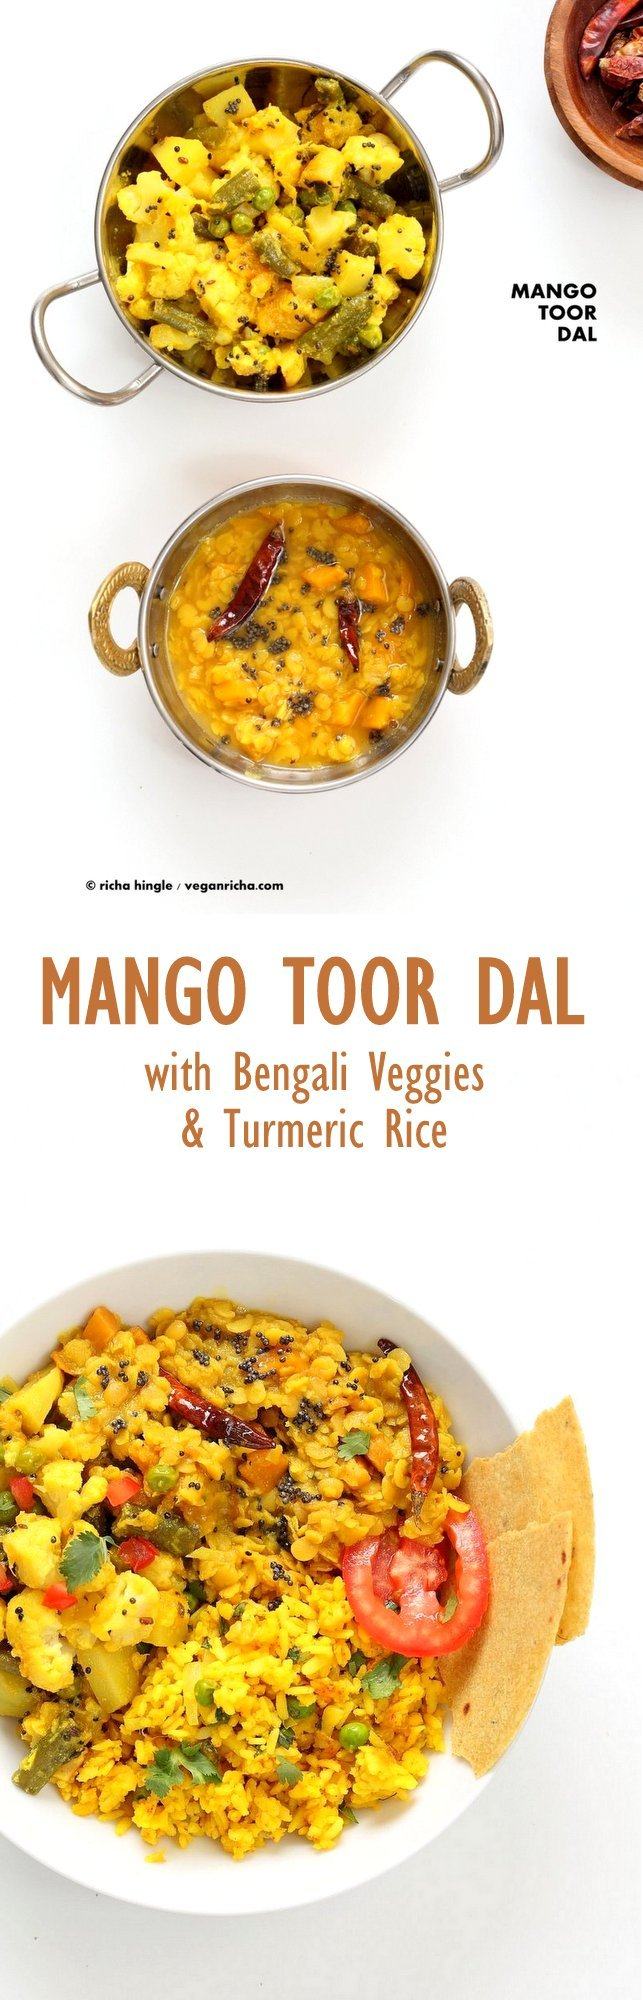 Indian Mango Dal. Toor Dal with unripe or ripe mango and 6 ingredients. Easy 1 pot soup or side. Use other lentils or veggies for variation. #Vegan #Indian #Dal #Recipe #Glutenfree #Soyfree with Bengali Veggies | VeganRicha.com